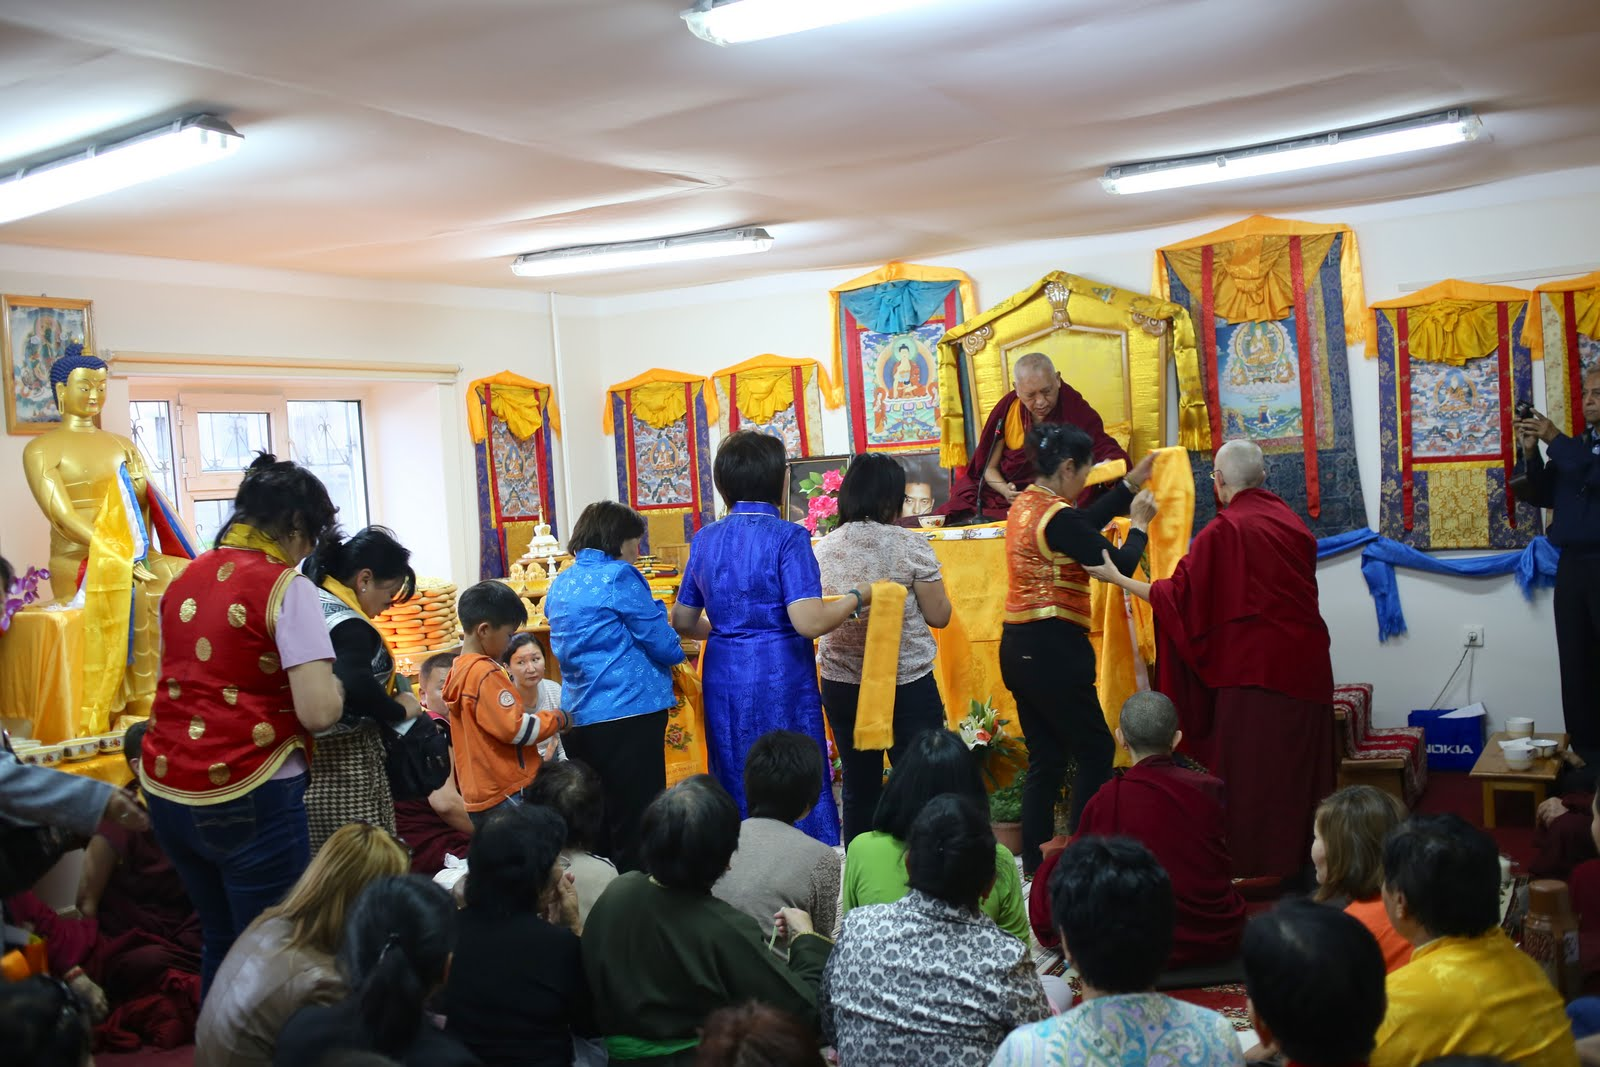 Students of Golden Light Sutra Center offering Rinpoche the Golden Light Sutra they have written in gold for him. September 2013. Photo: Ven. Thubten Kunsang